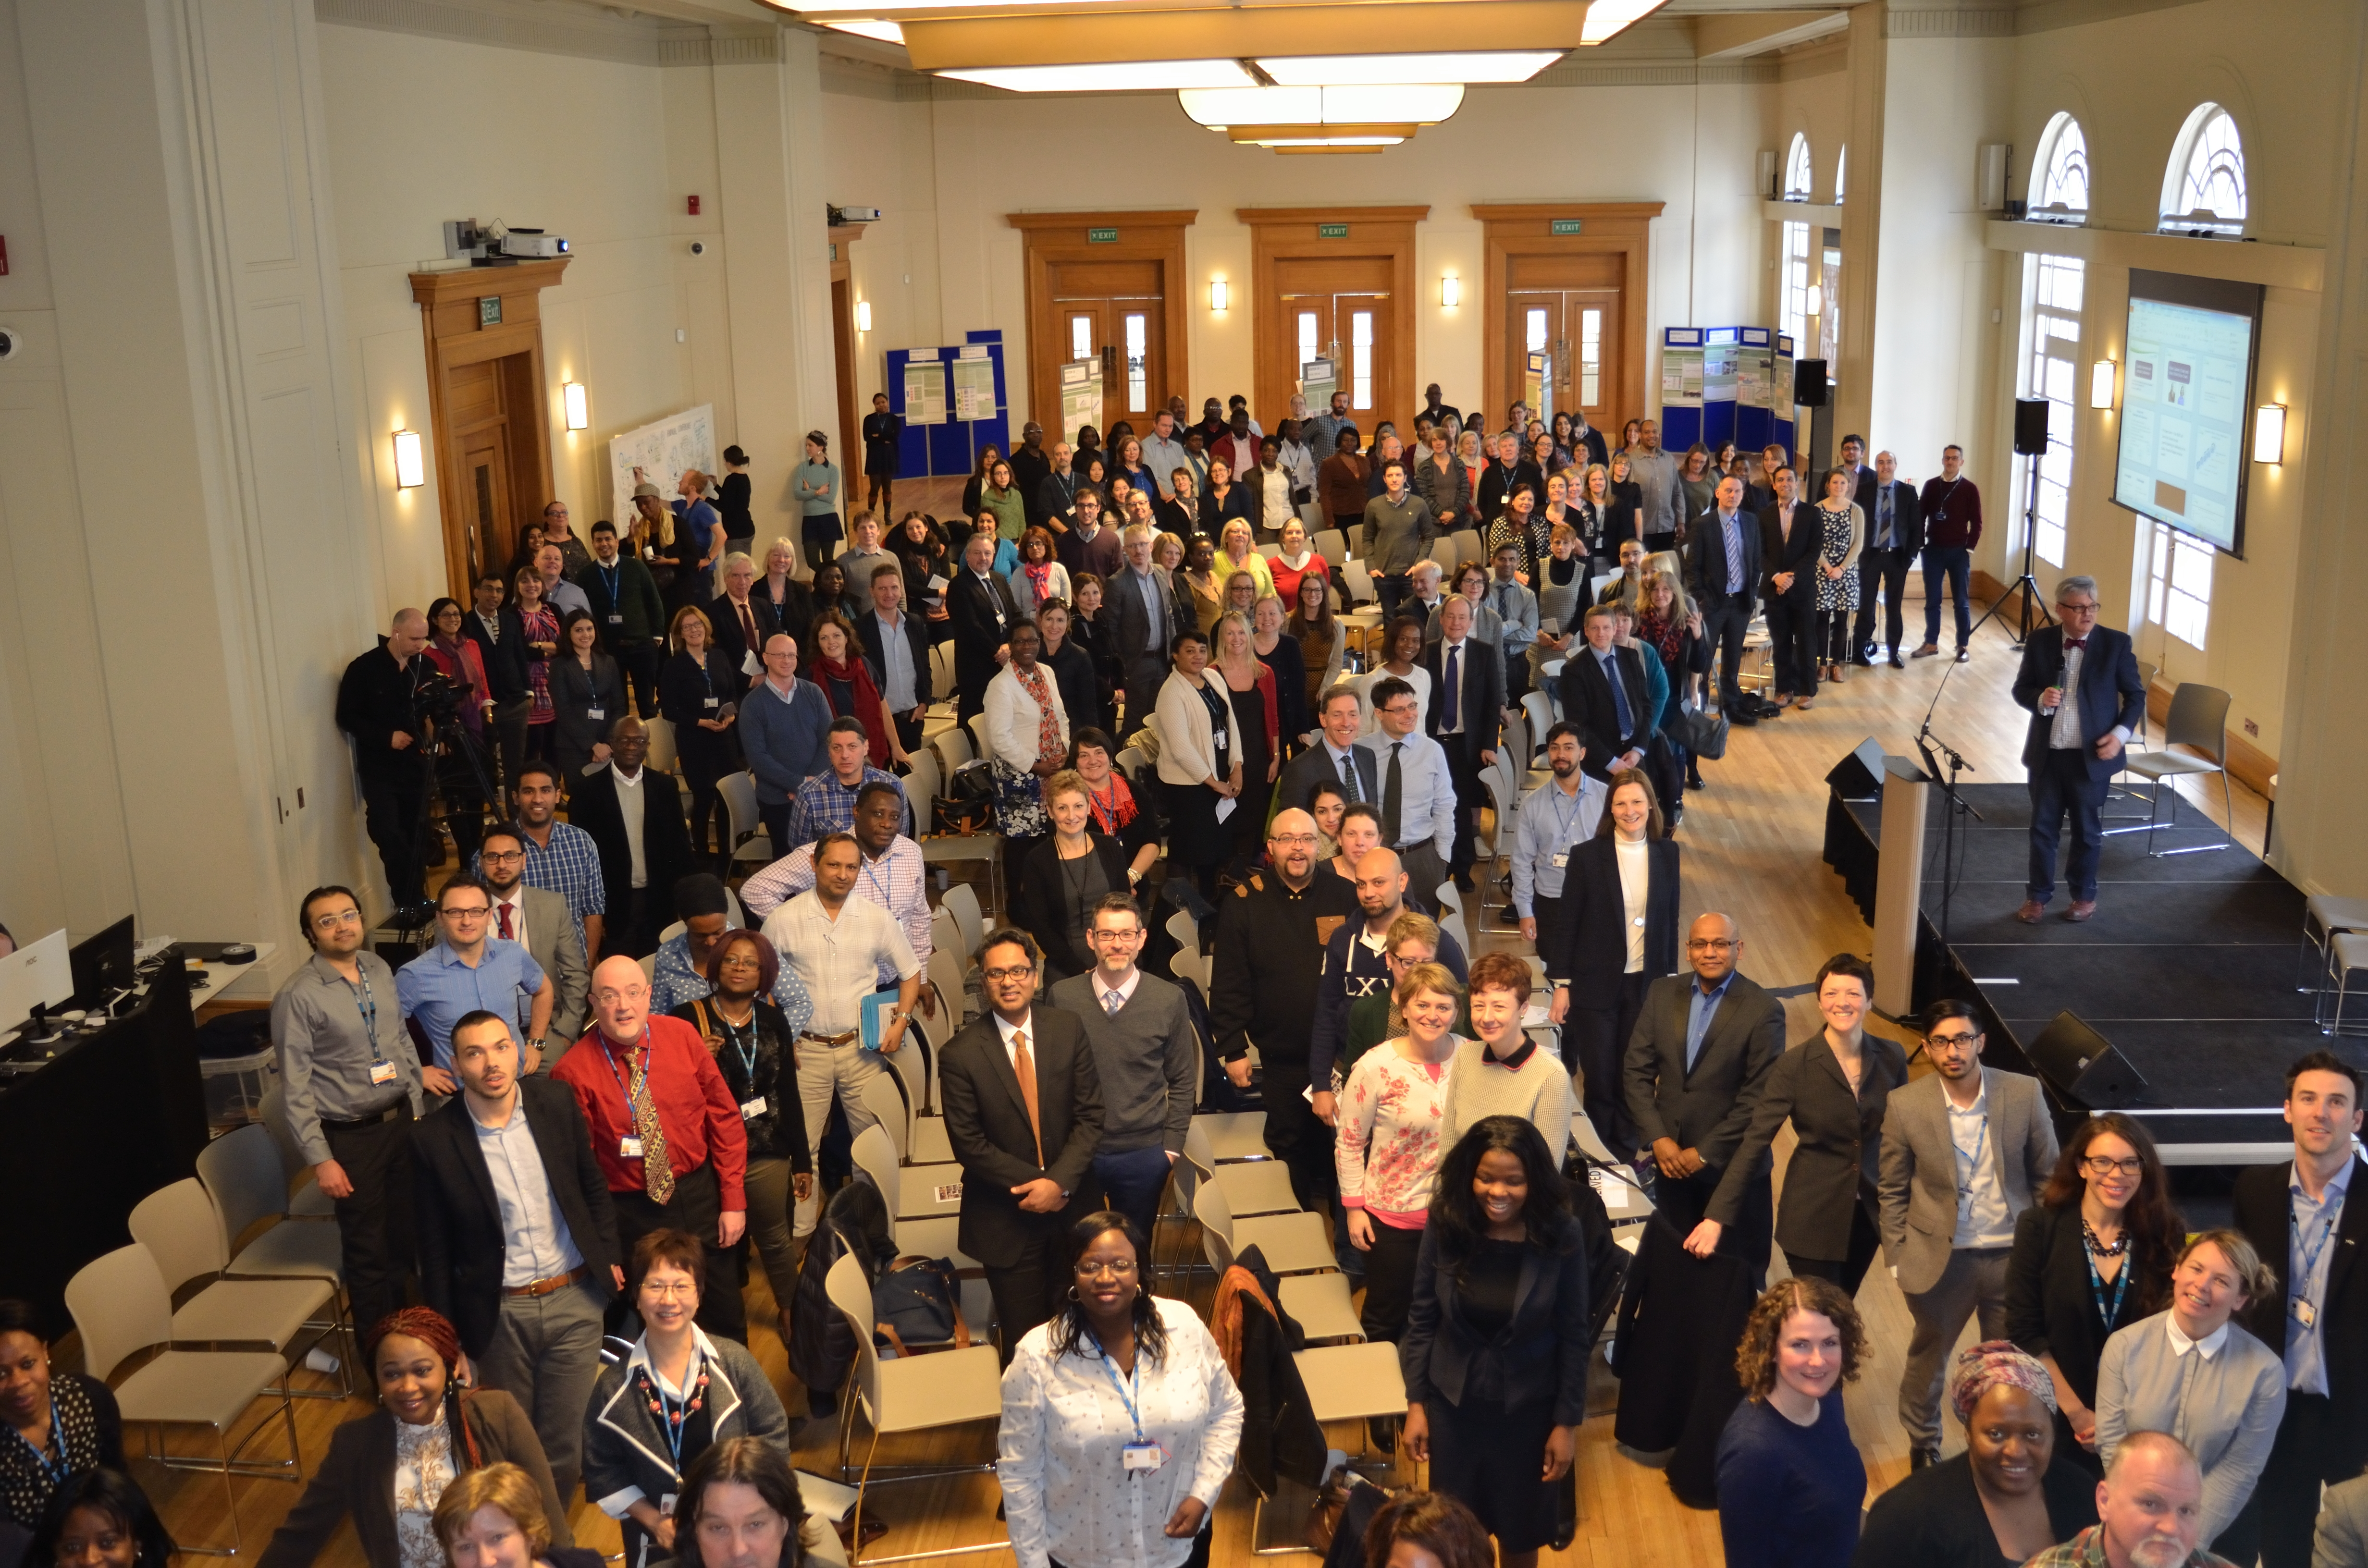 QI Conference delegates - 10 March 2015